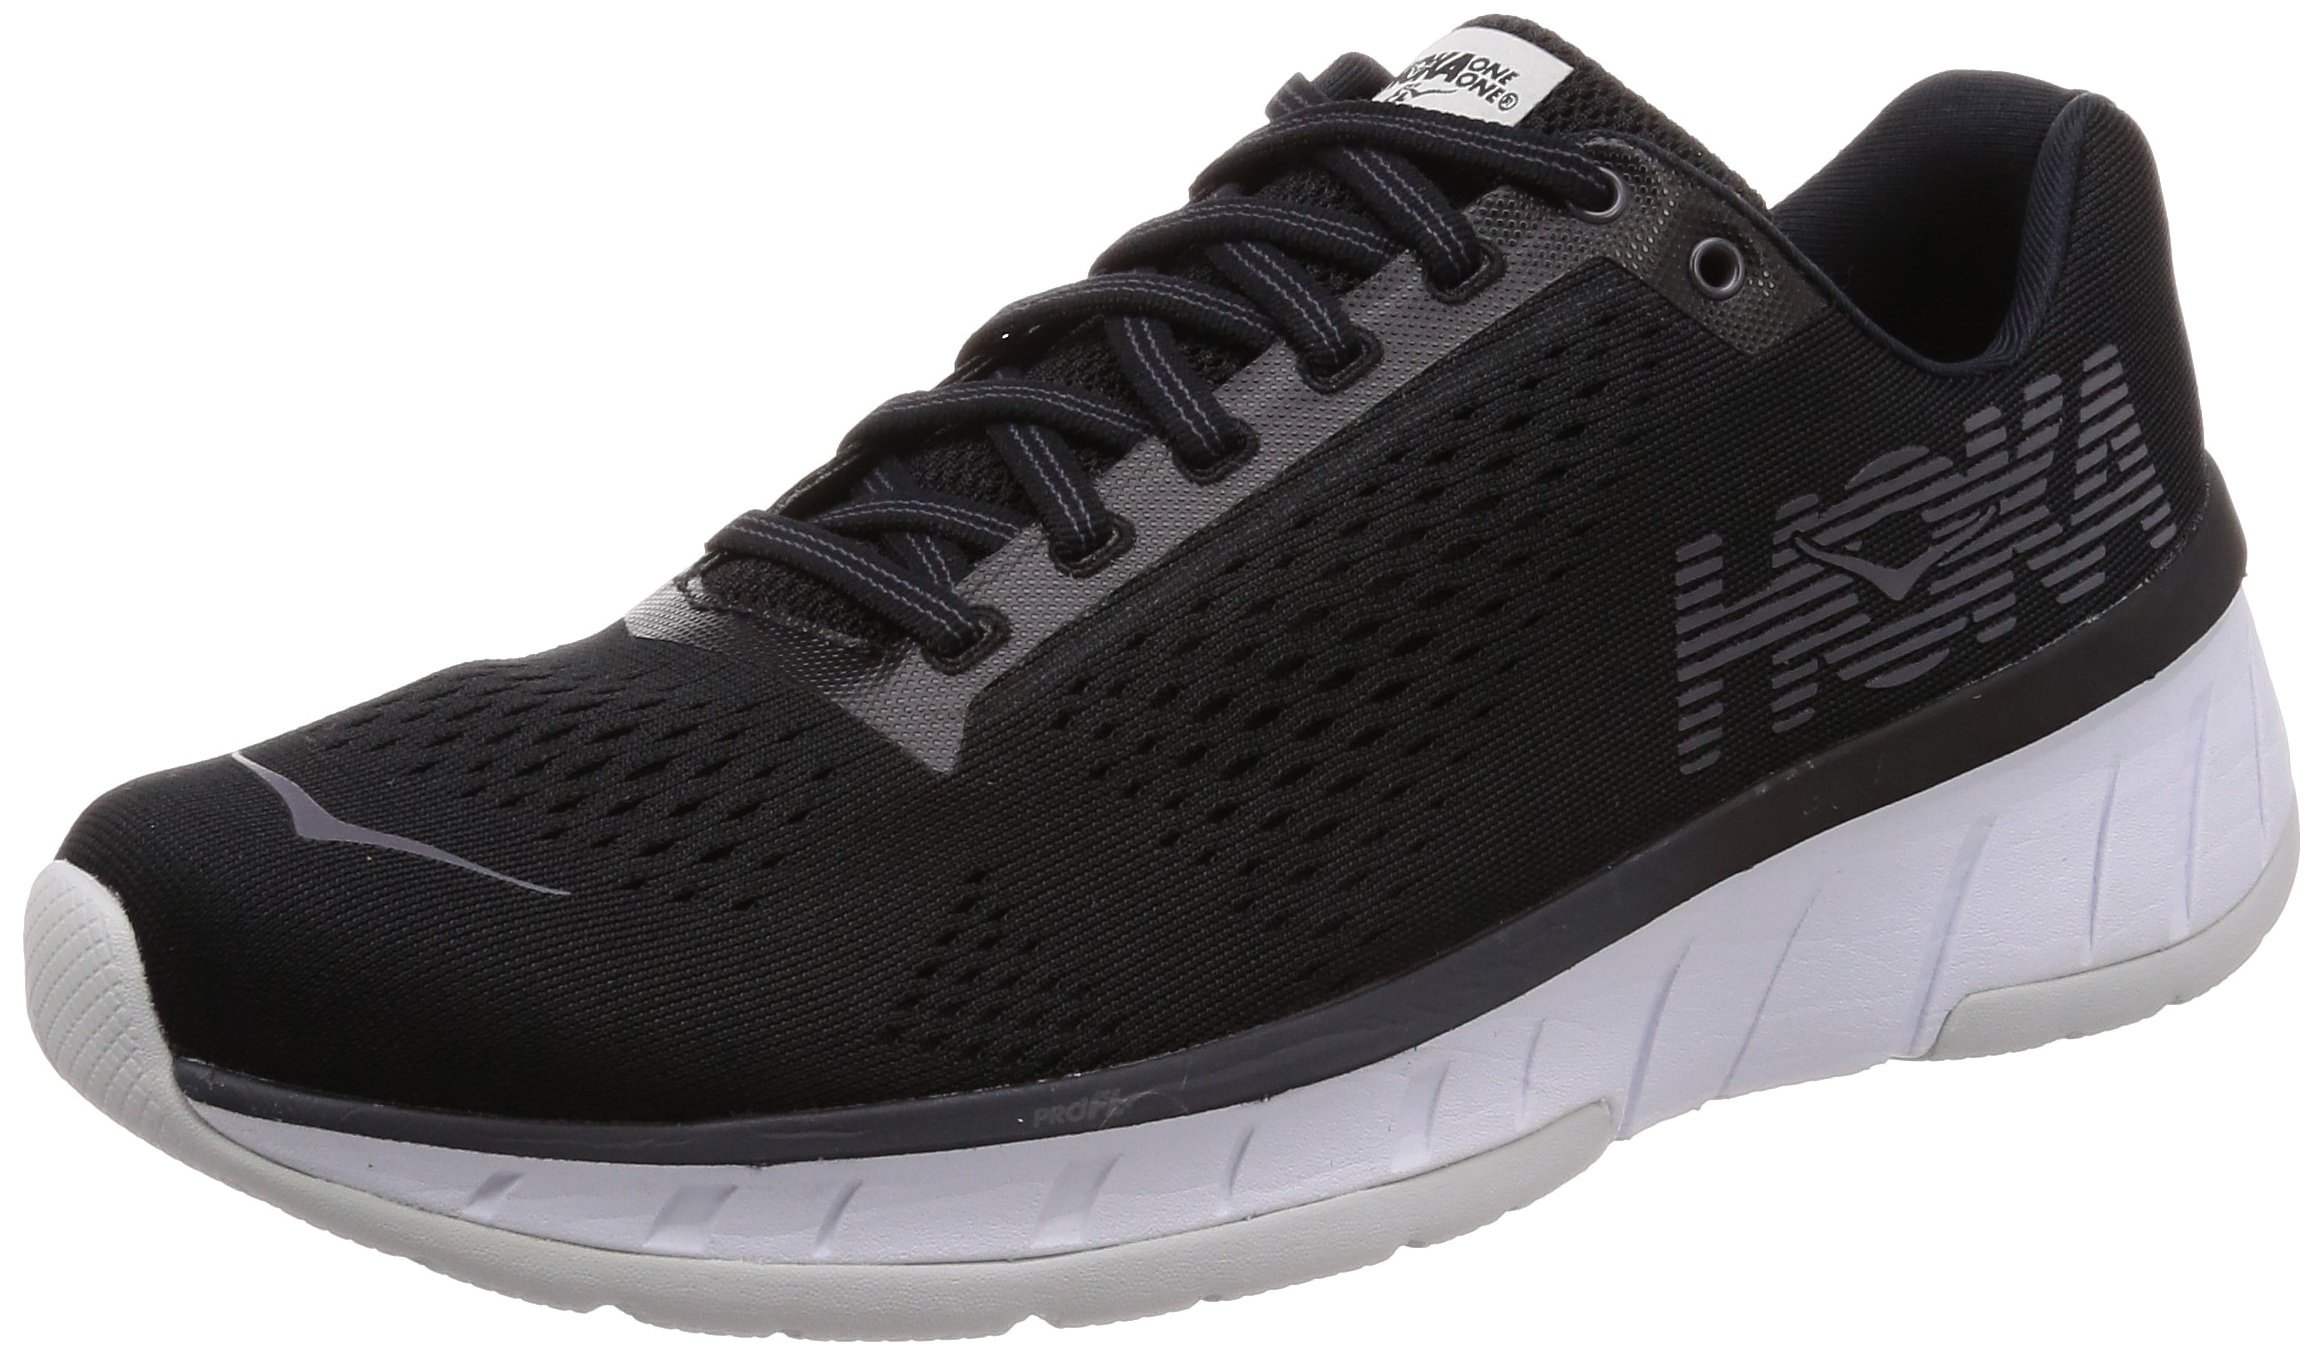 HOKA ONE ONE Mens Cavu Fabric Low Top Lace Up Running, Black/White, Size 8.0